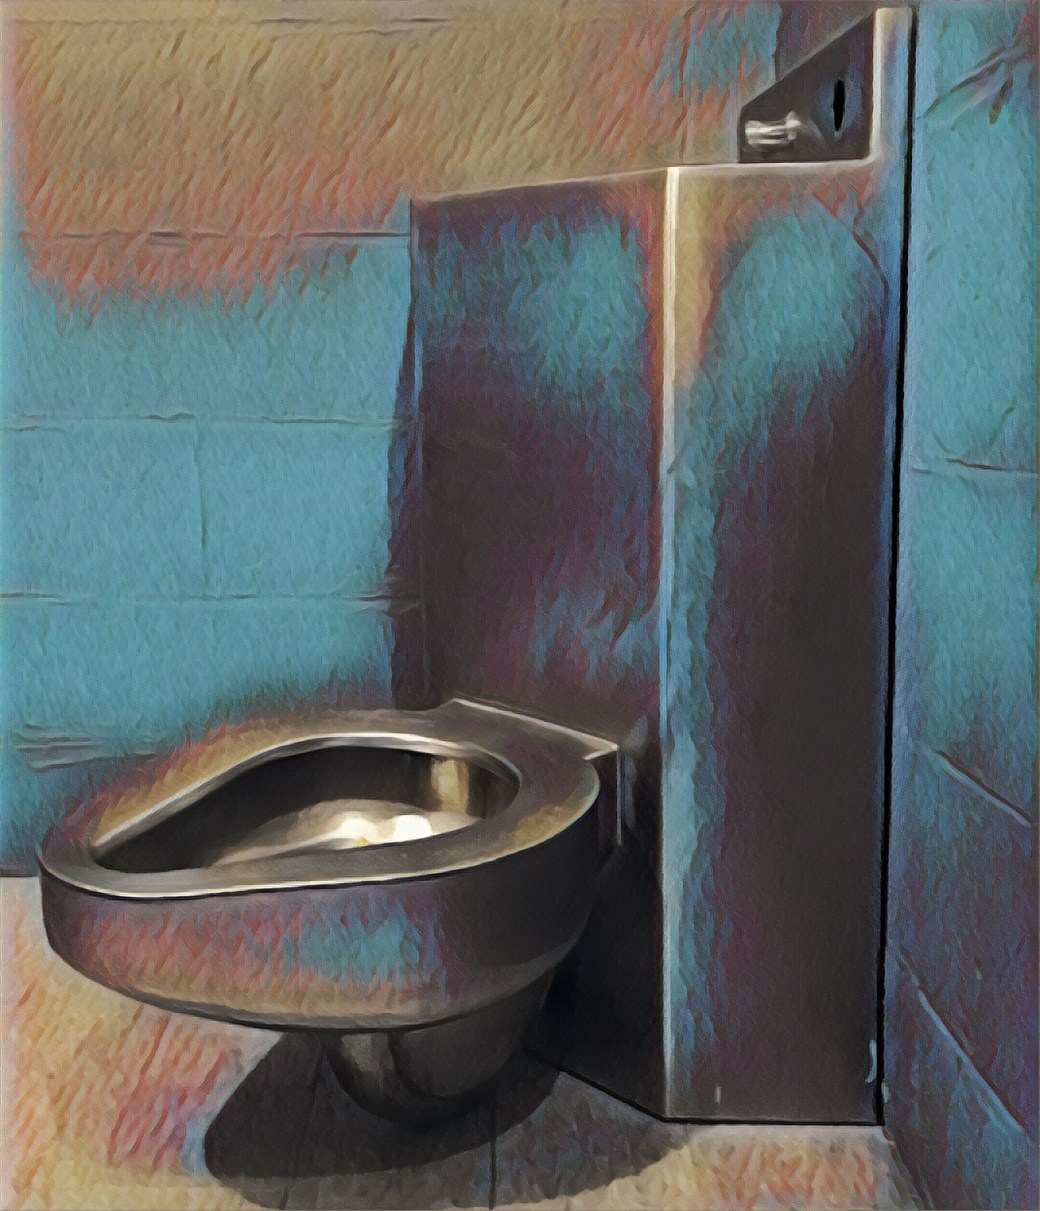 Stylized image of a metal prison toilet.